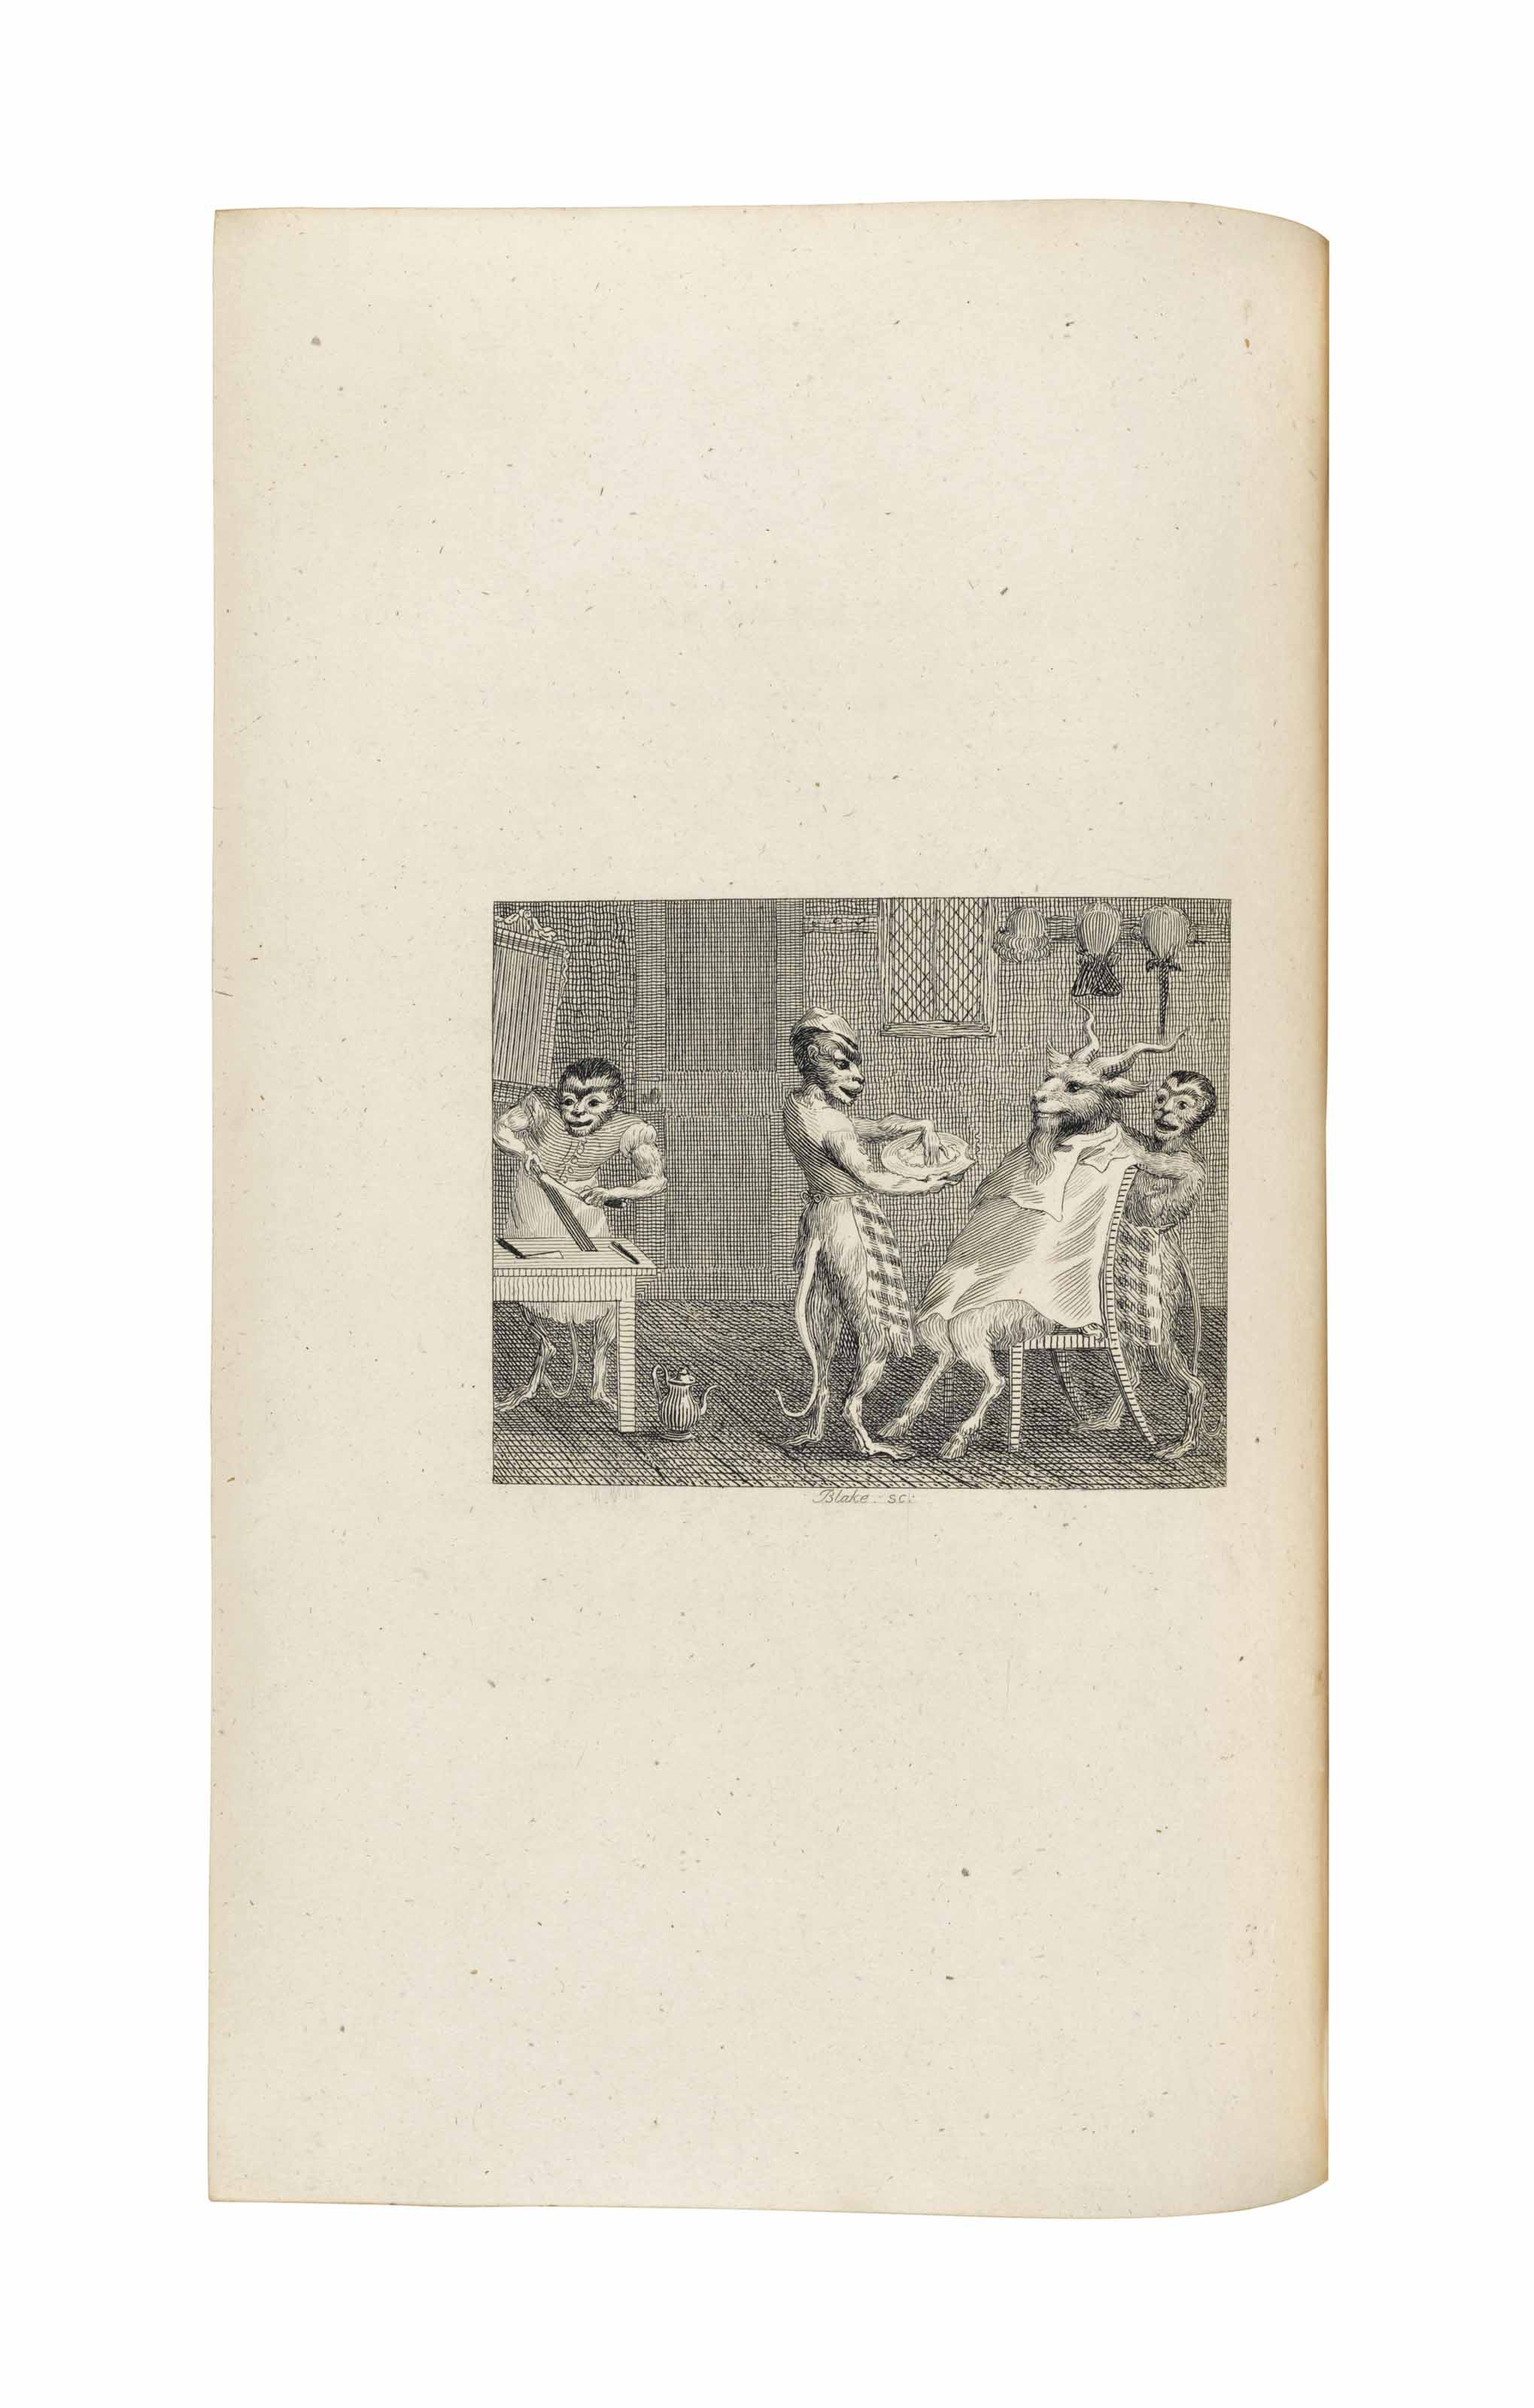 GAY, John (1685-1732). Fables. London: for John Stockdale, 1793. 2 volumes, 8° (261 x 160mm). Engraved frontispiece and 67 engraved plates by Blake, Grainger, Mazell and others. With the list of subscribers bound at the end. Green morocco by Lloyd, Wallis & Lloyd, spines in compartments with red morocco onlays on the bands, gilt supralibros, gilt spine lettering, turn-ins and edges (spine lightly and evenly faded, extremities lightly rubbed). Provenance: J.F. Hinckley (bookplate) -- purchased from Ch. Bosse, 1923.